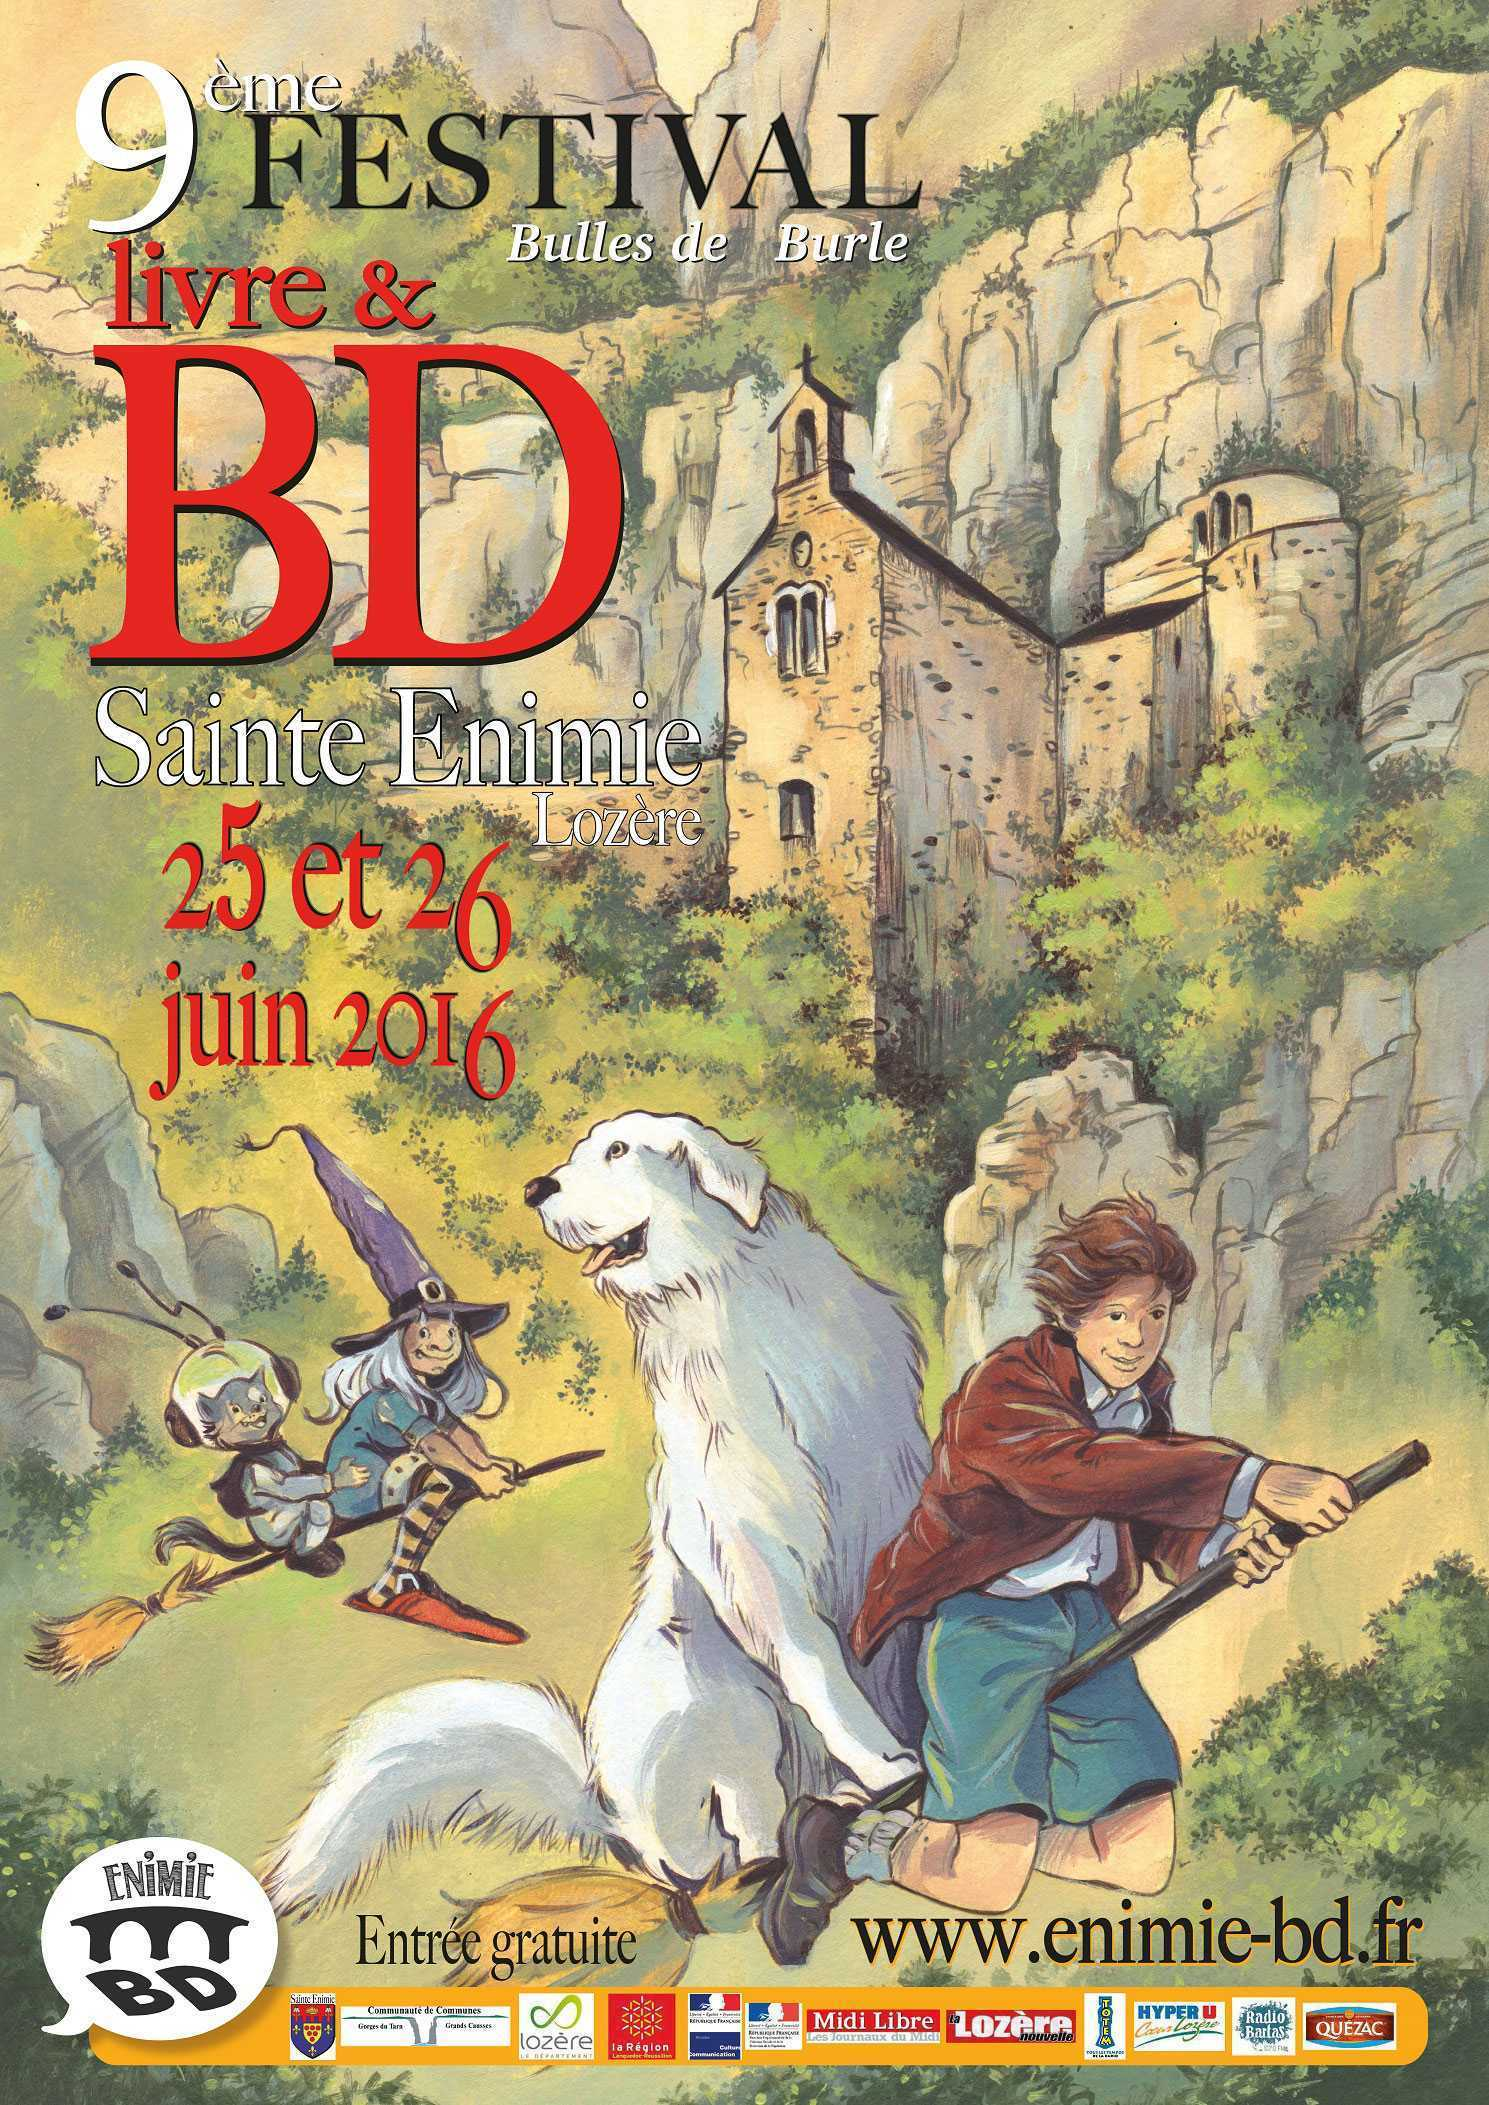 Festival BD 2016 à Sainte-Enimie en Lozère, c'est les 25 et 26 juin